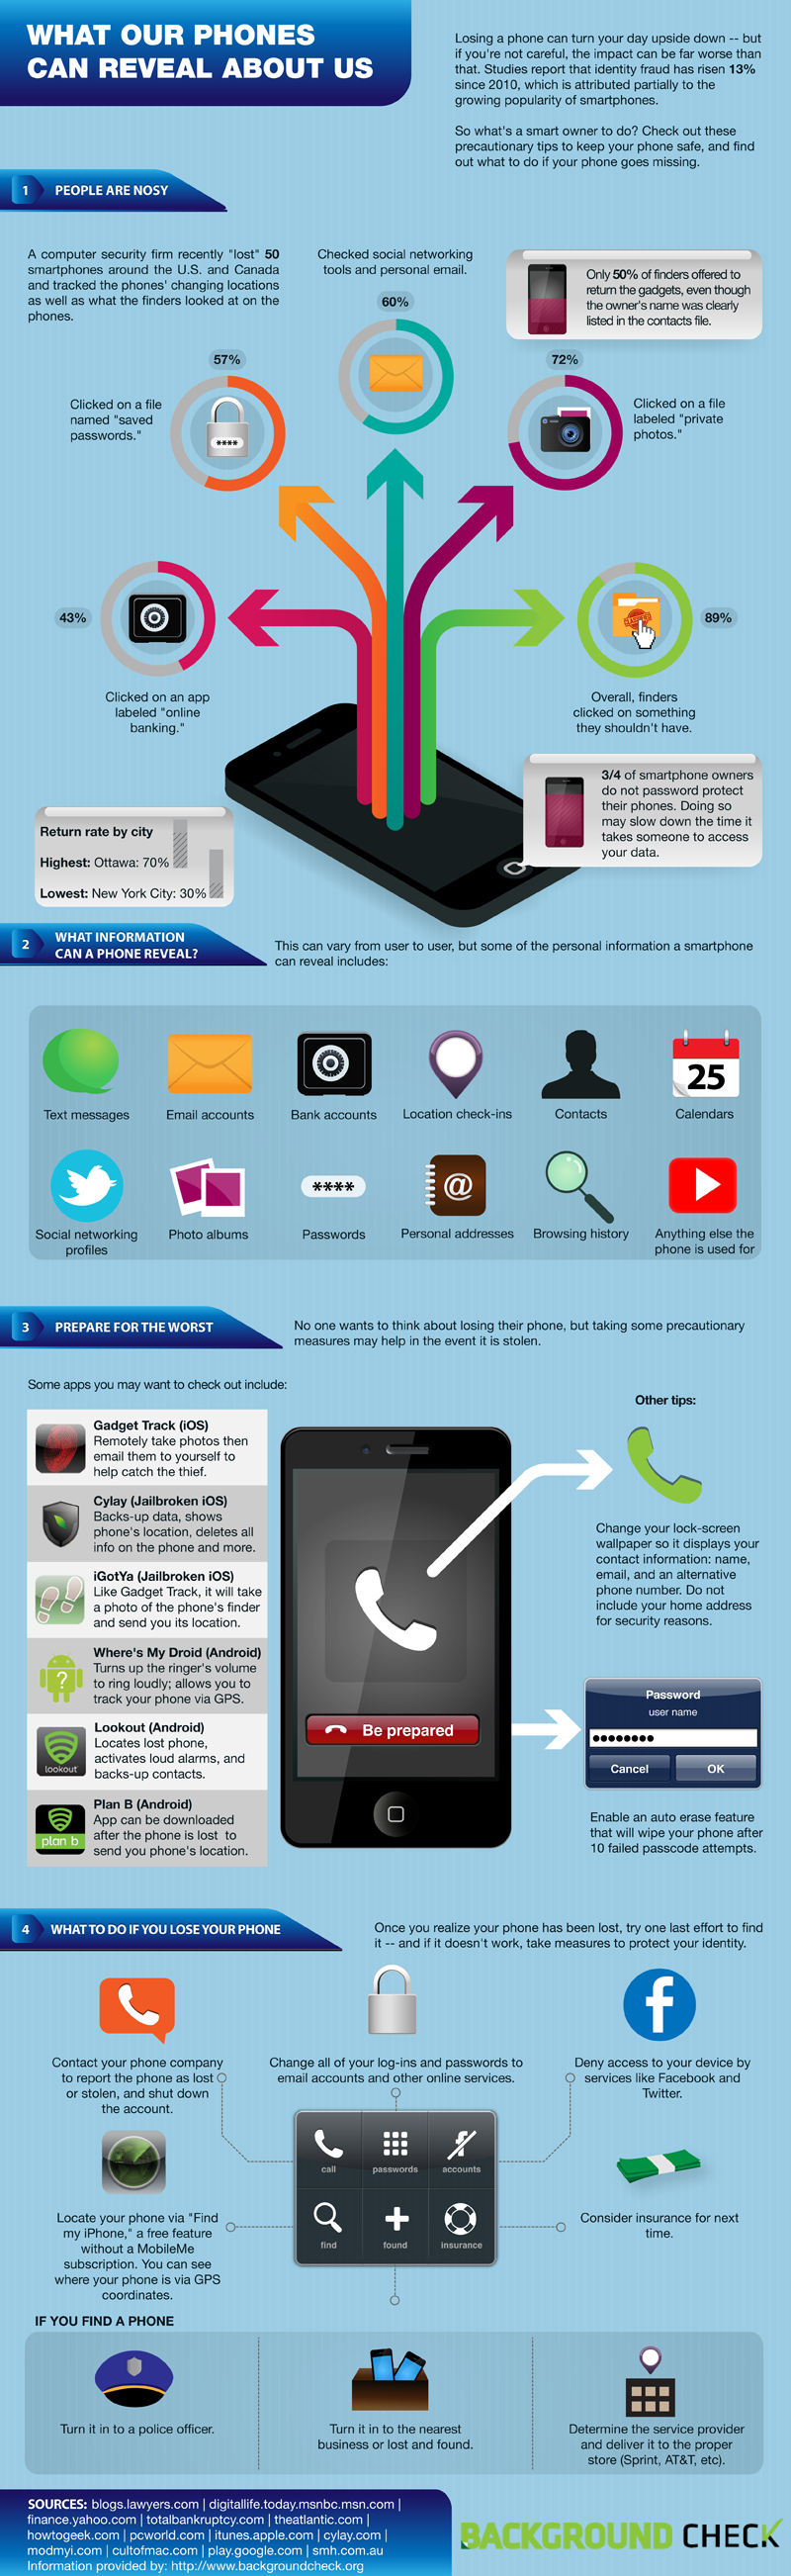 Phones Reveal Identity Theft Infographic